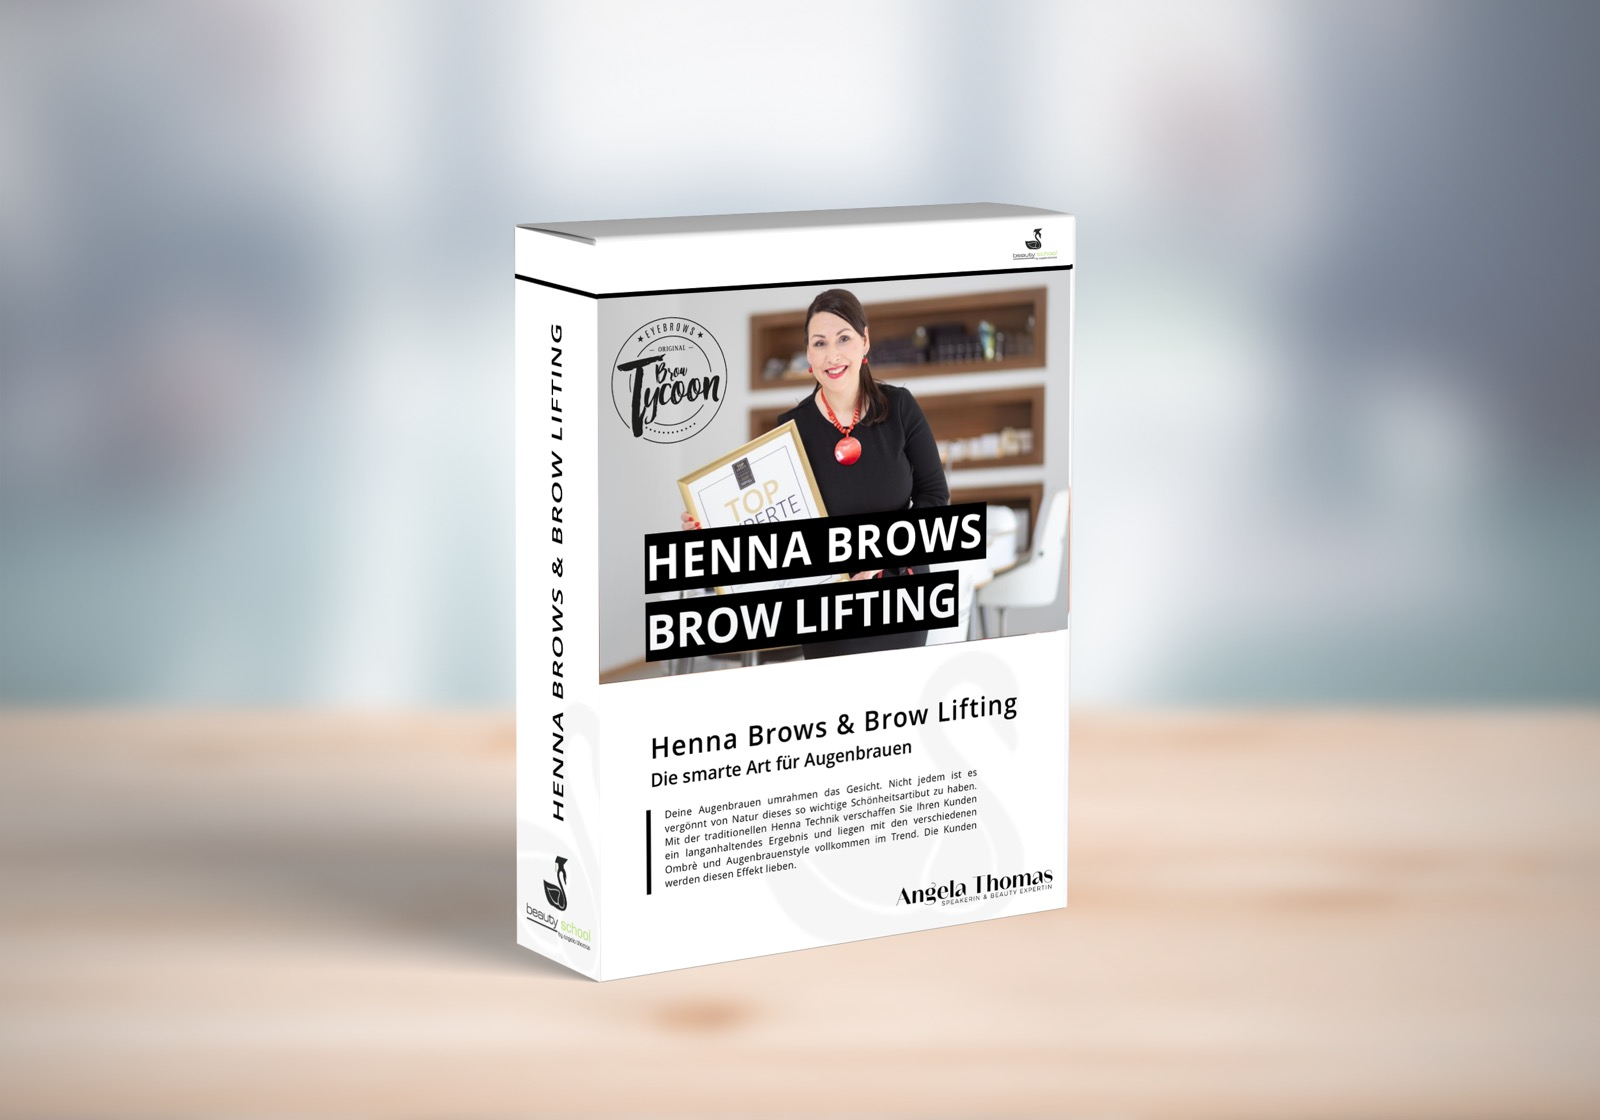 HENNA BROWS UND BROW LIFTING ONLINEKURS